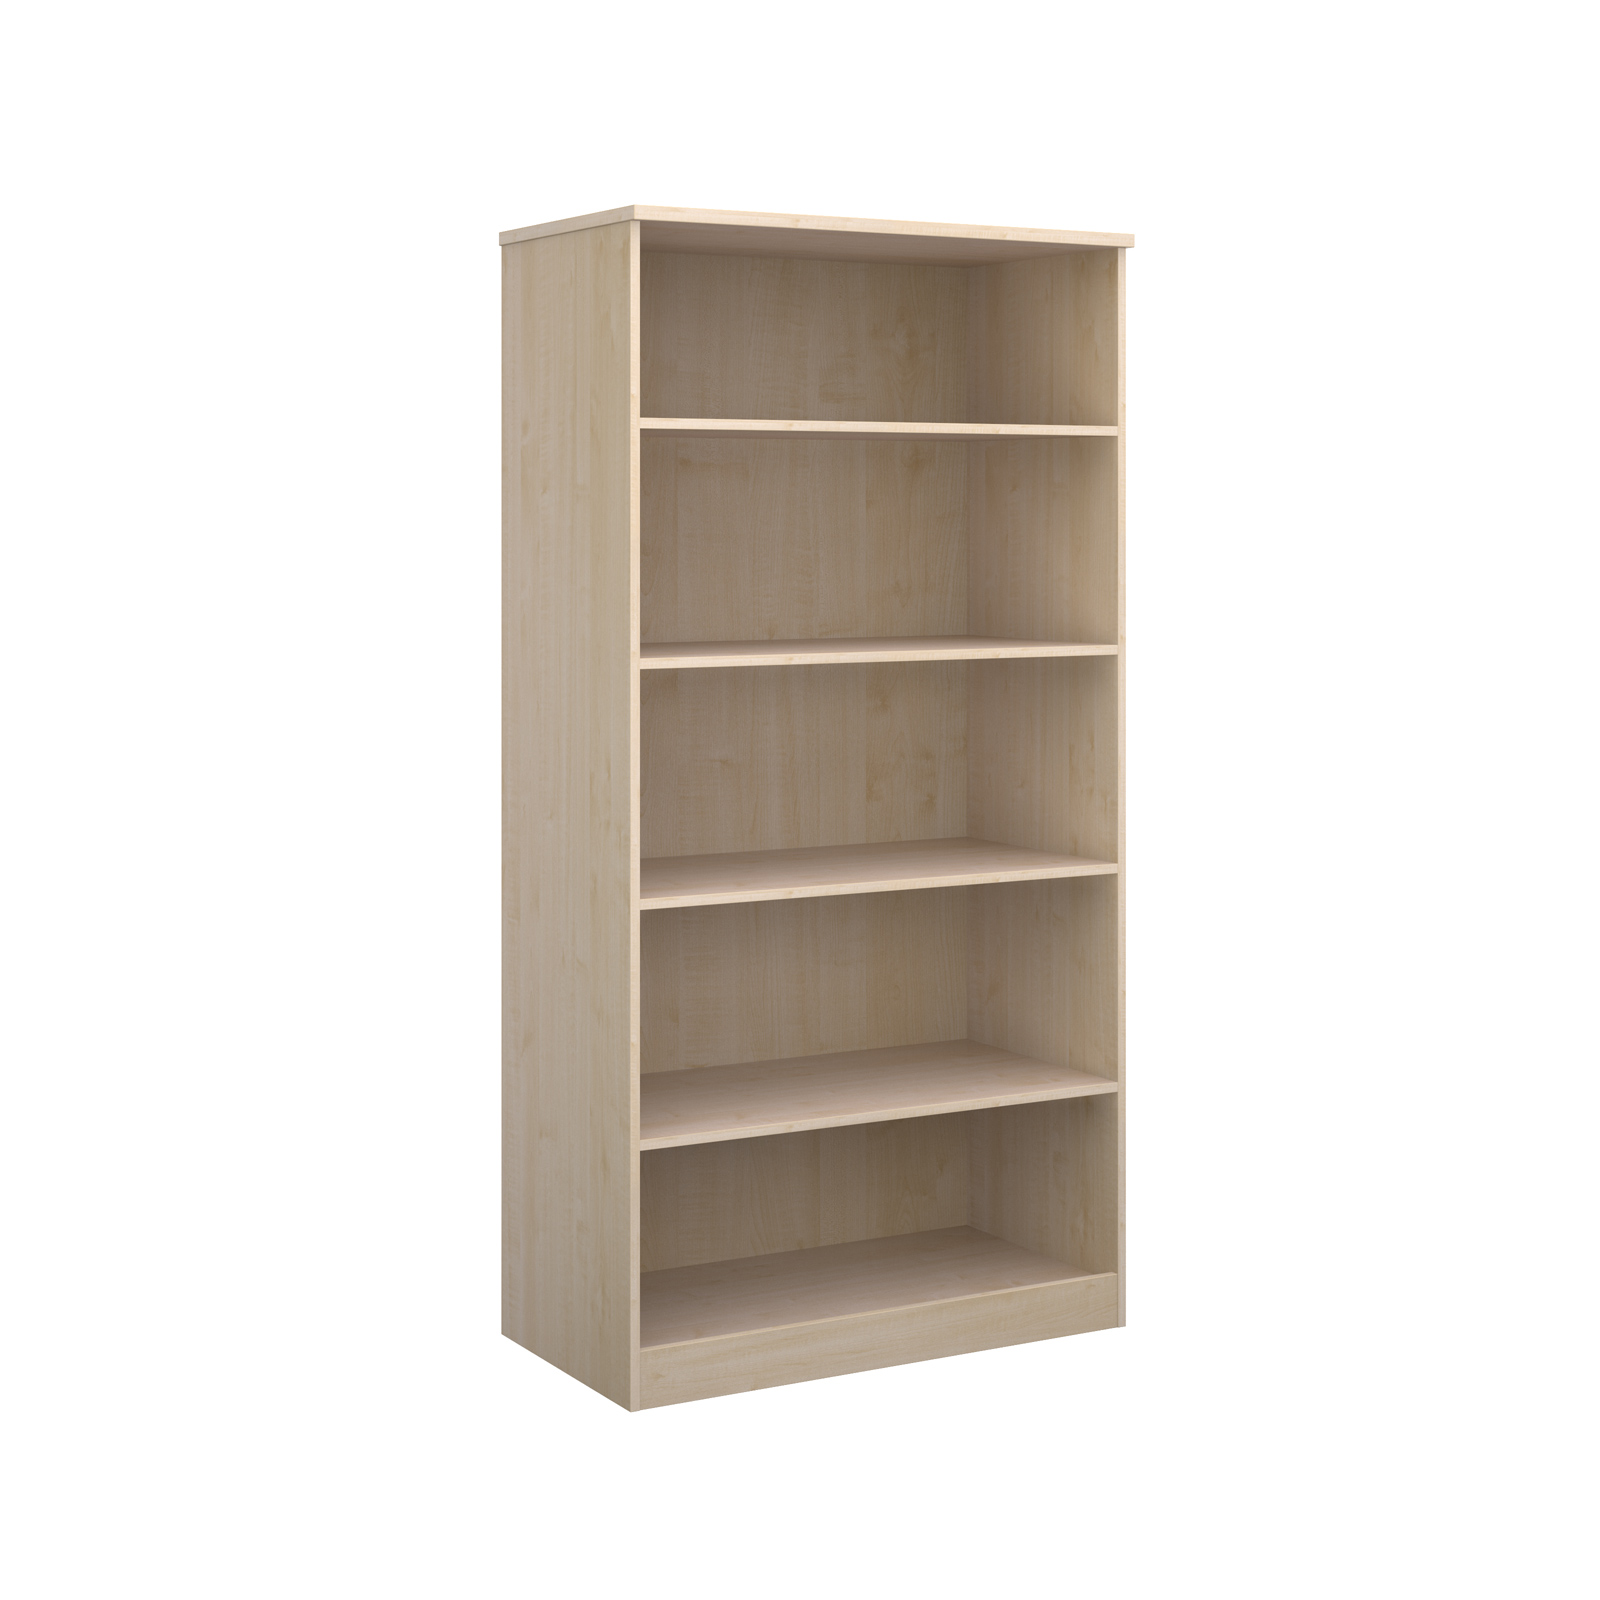 Deluxe bookcase 2000mm high in maple